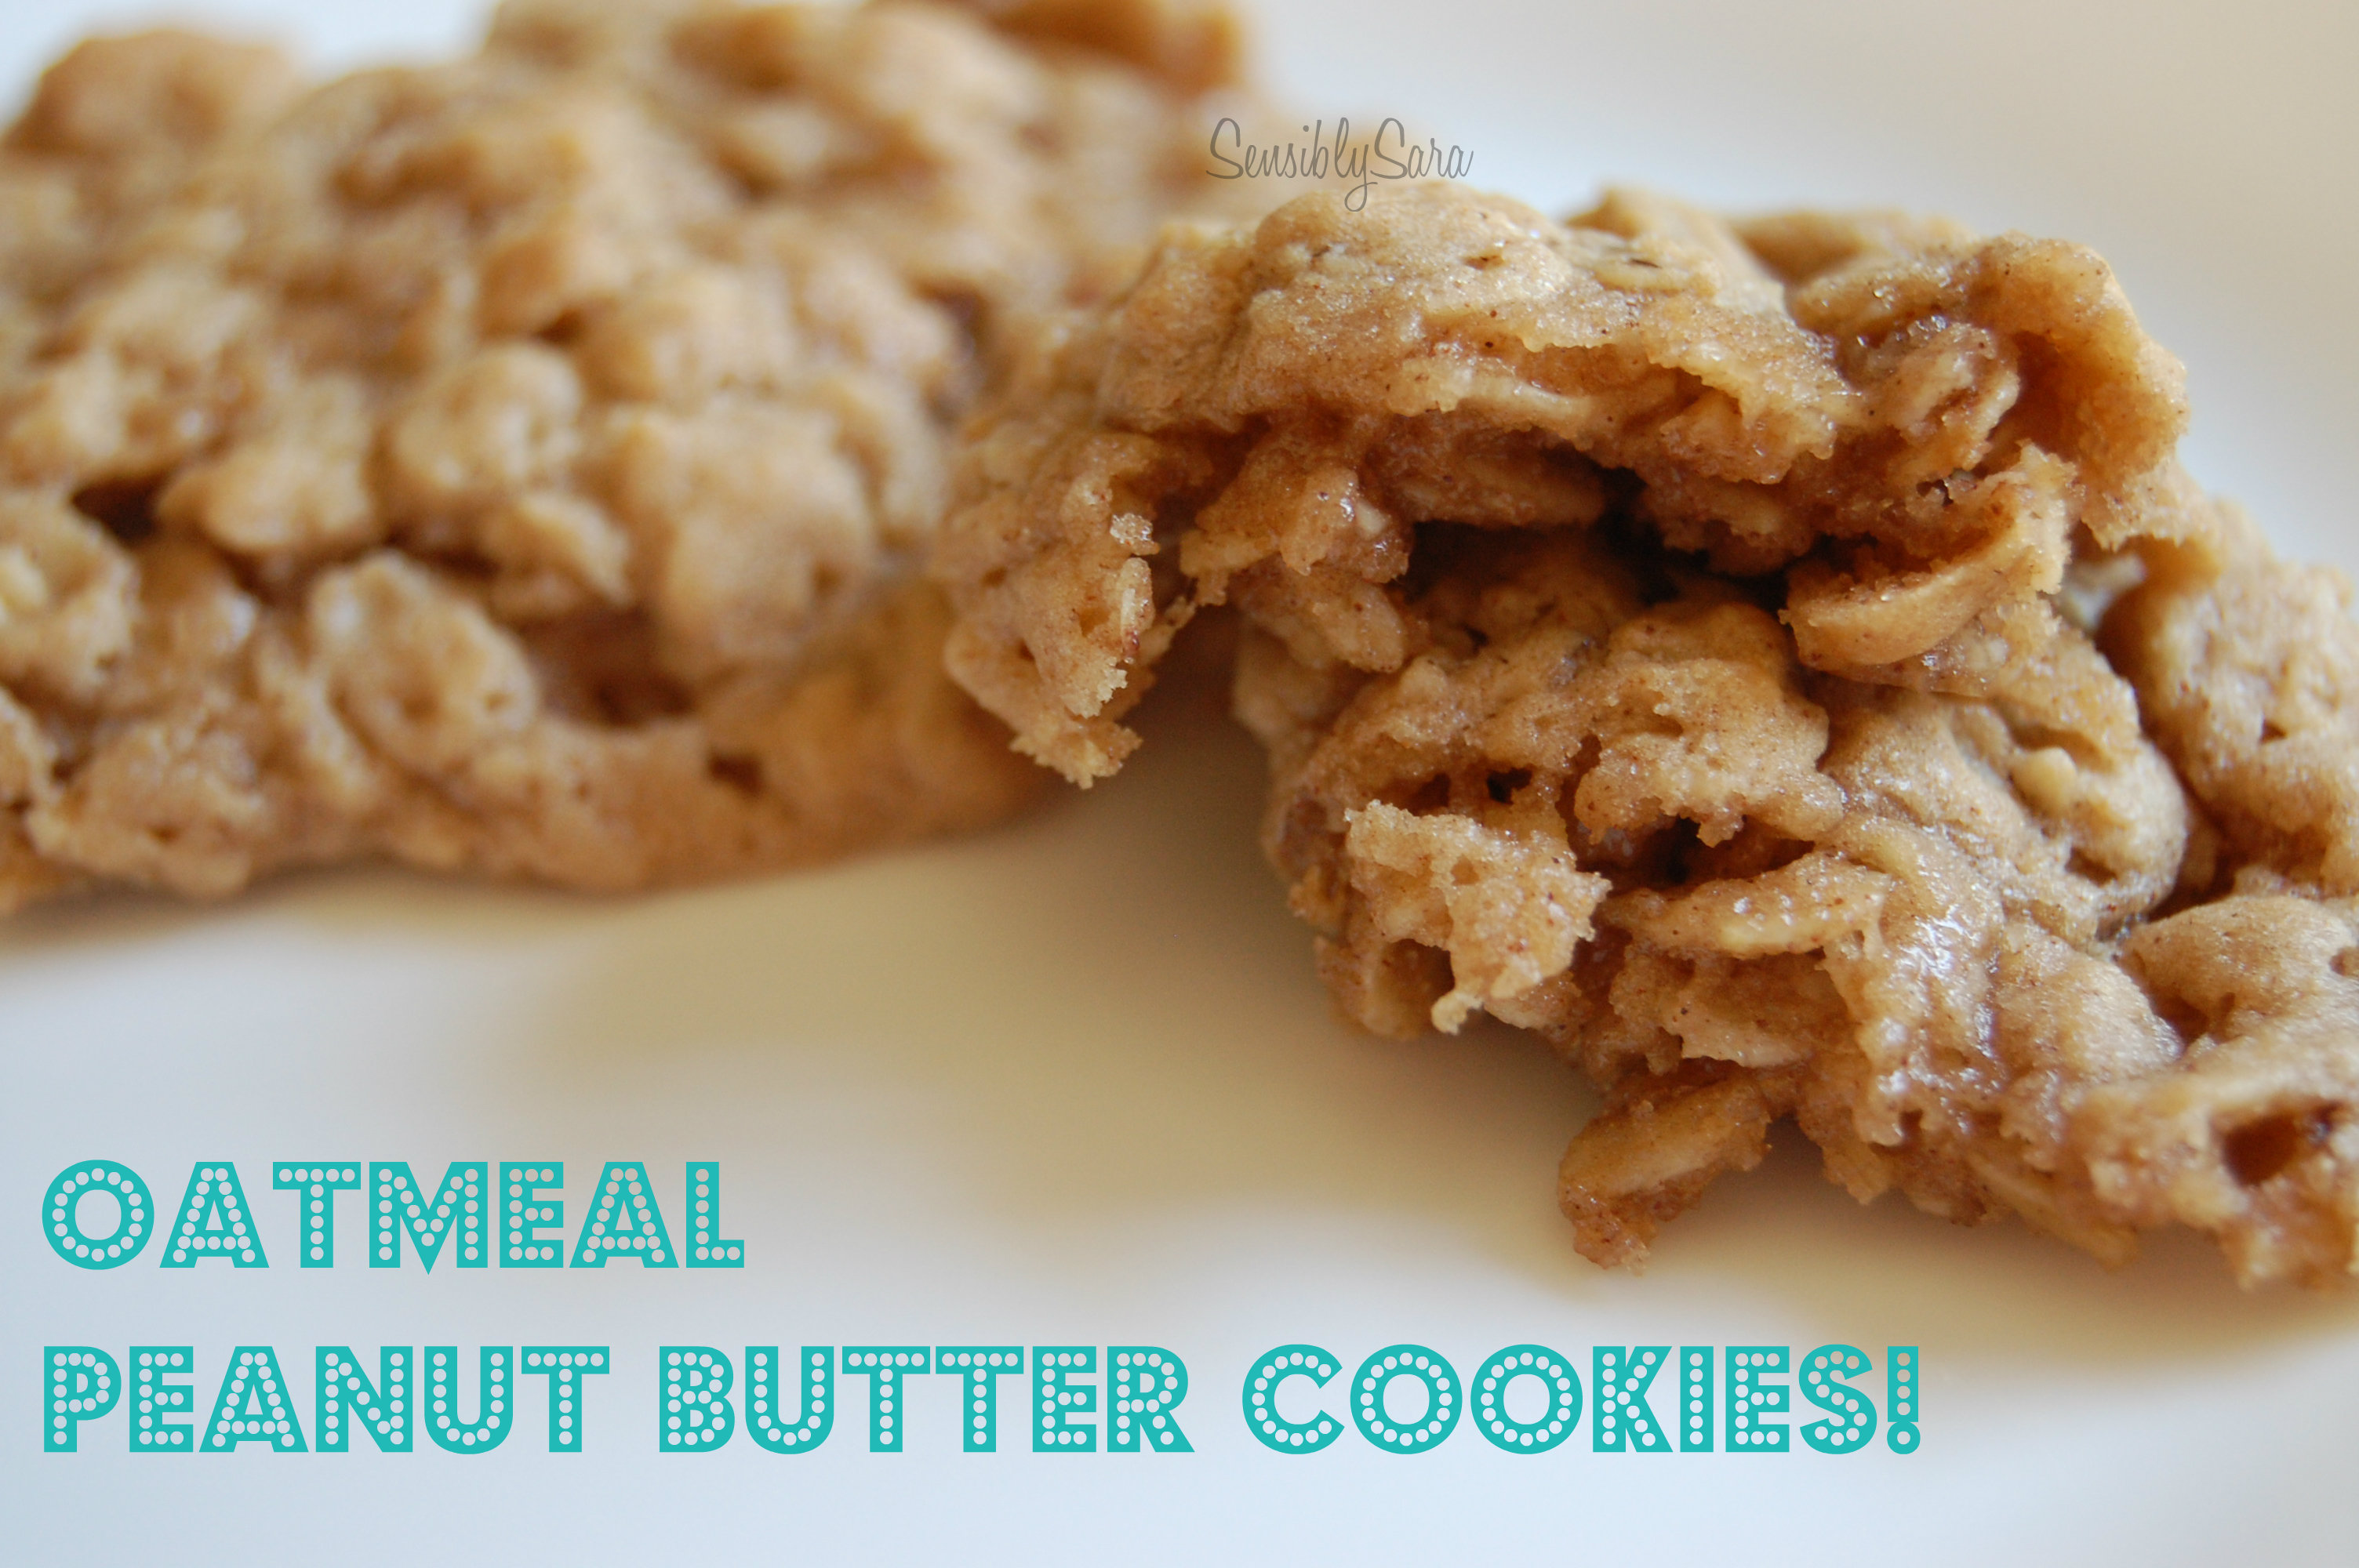 ... the peanut butter oatmeal cookies were created print oatmeal peanut